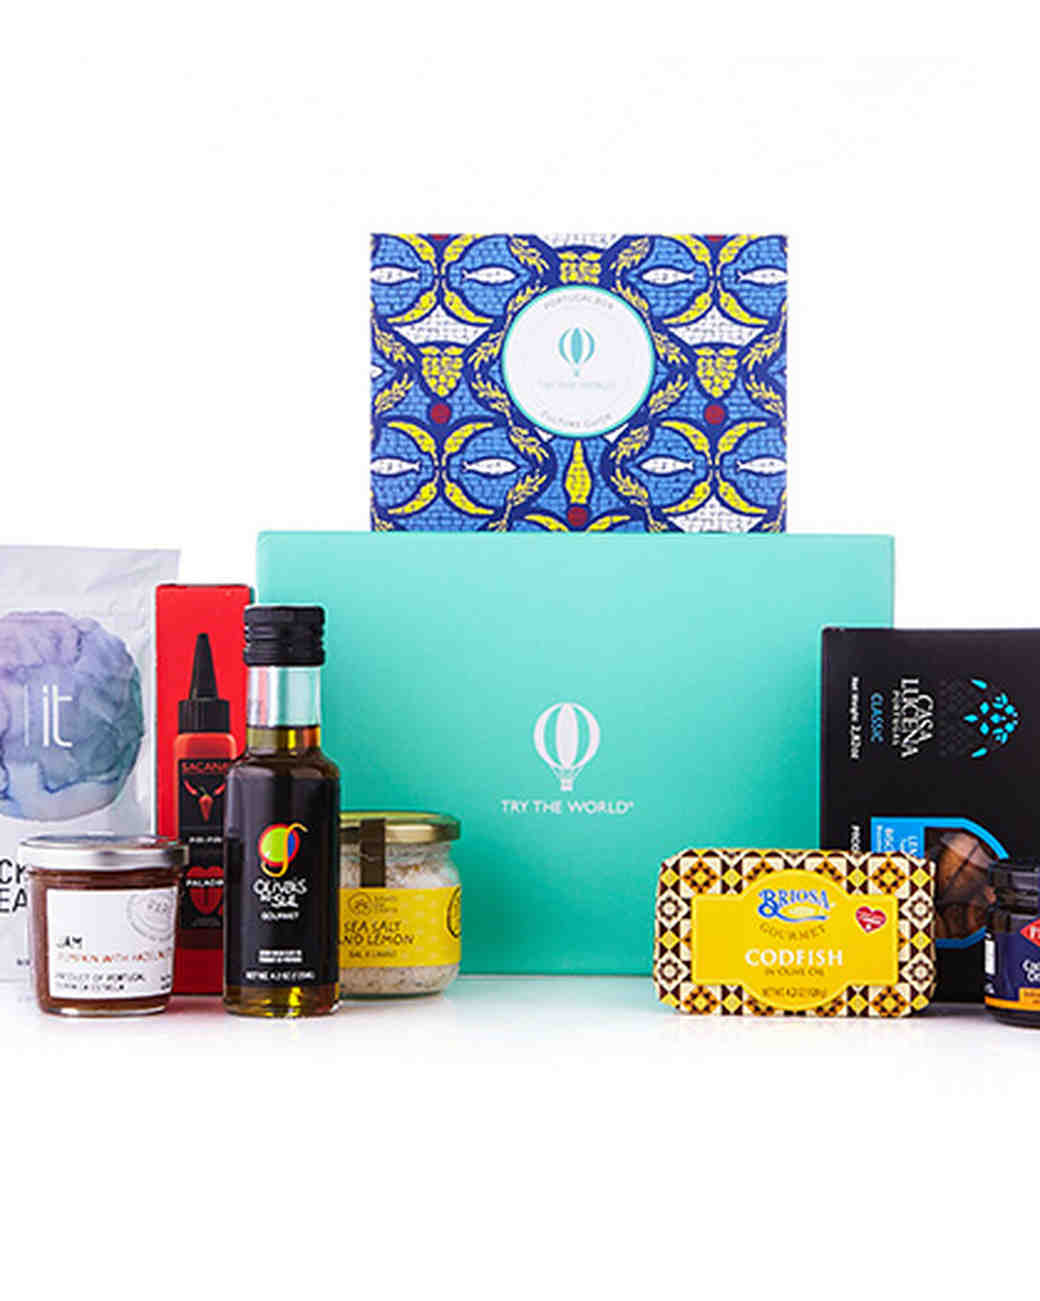 14 Subscription Boxes That Make Awesome Wedding Gifts